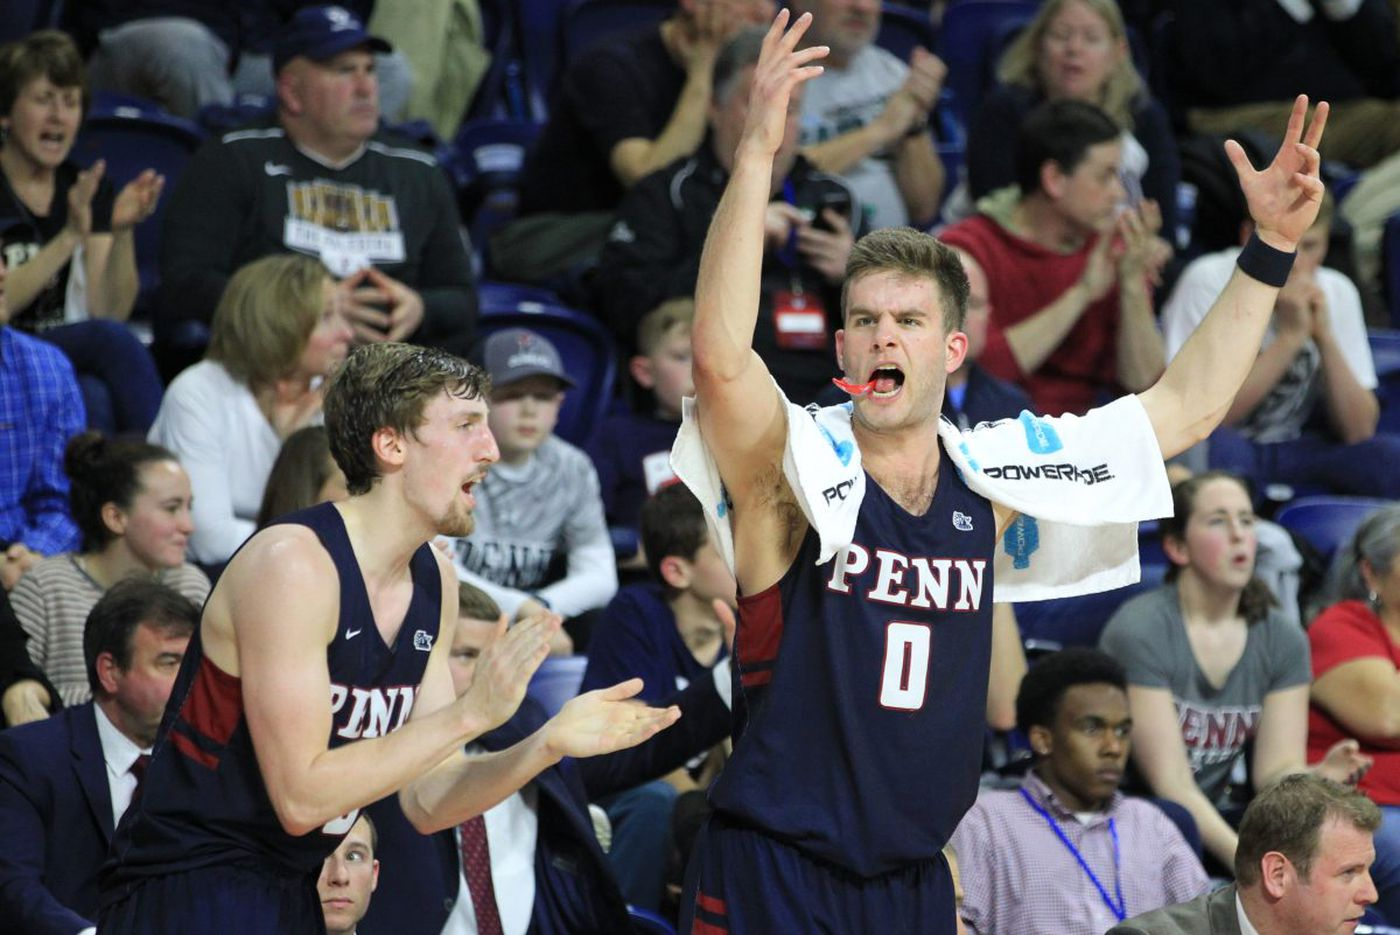 No celebration for Penn as Yale wins a thriller